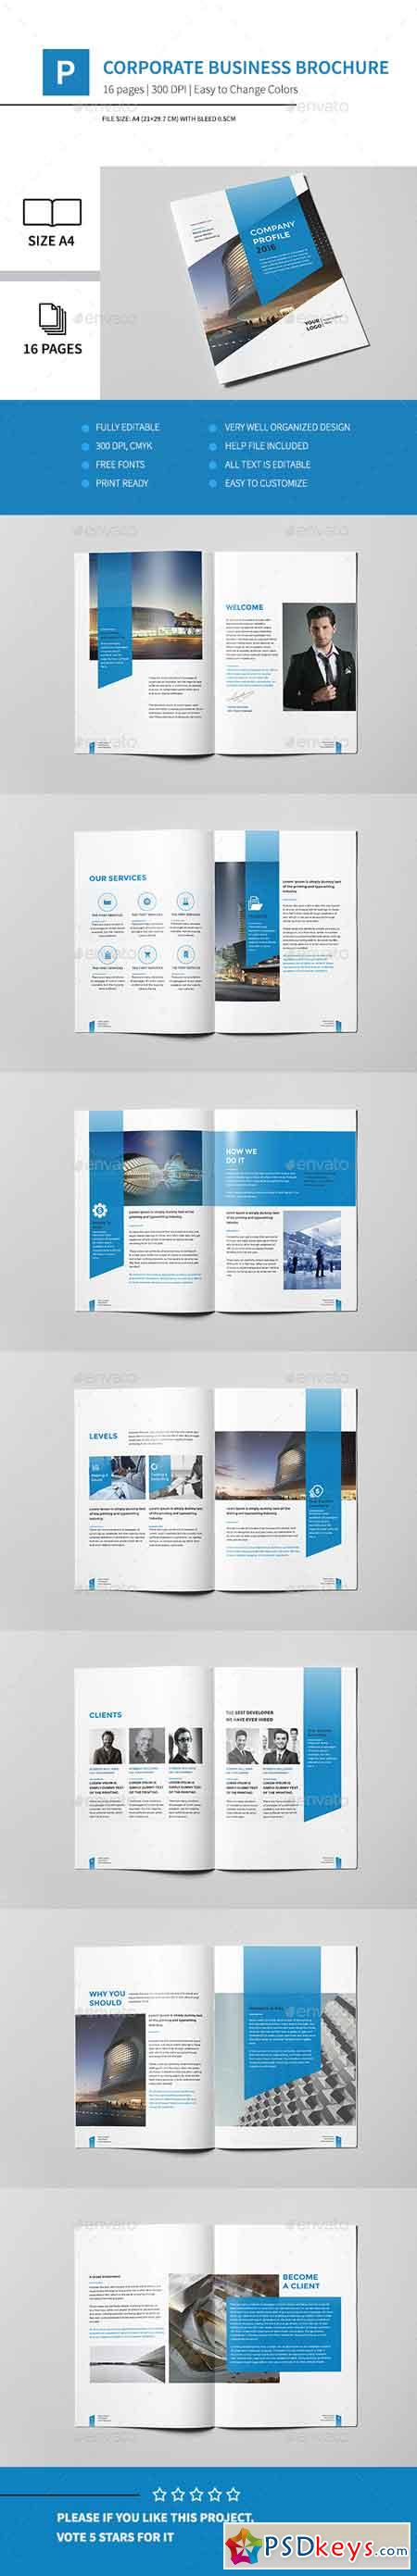 Corporate Business Brochure 16 Pages A4 14539762